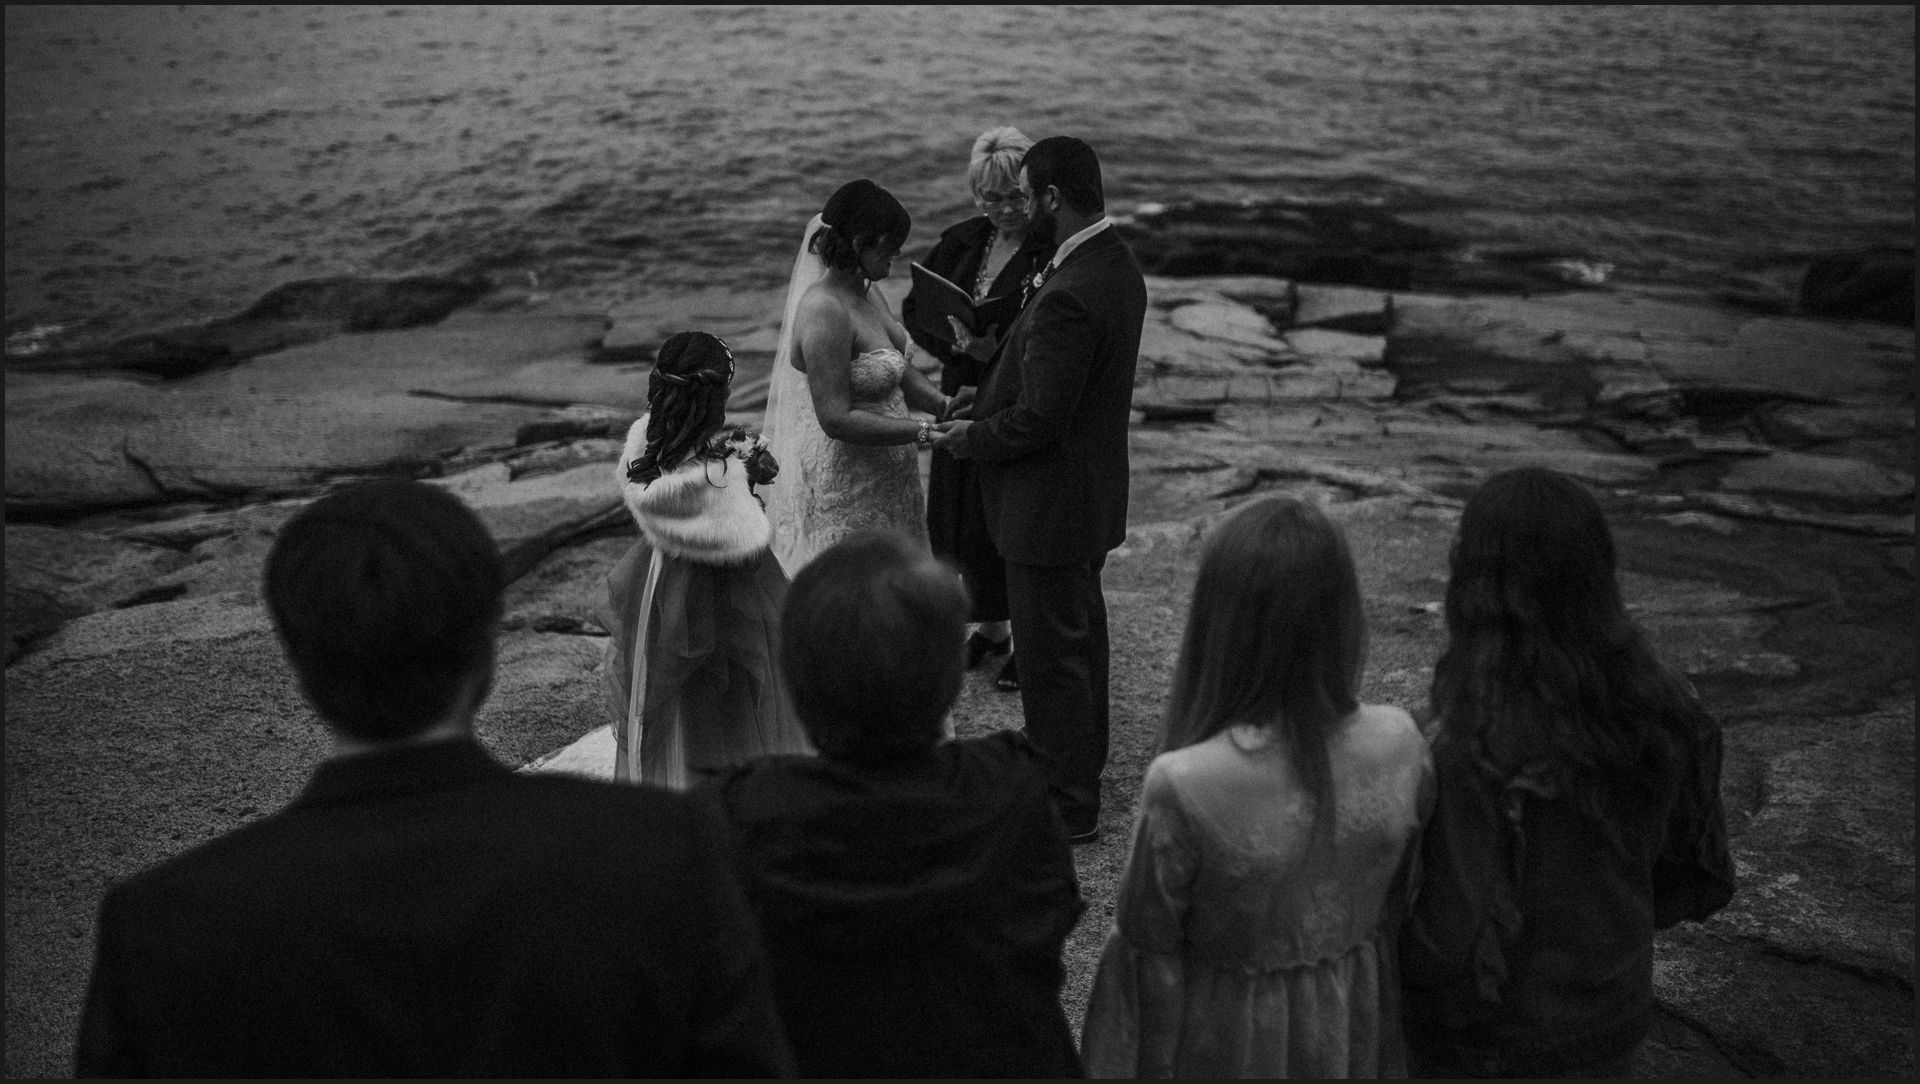 wedding, ceremony, celebrant, bride and groom, hand in hand, wedding by the sea, ocean view, wedding guests, black and white, cliff